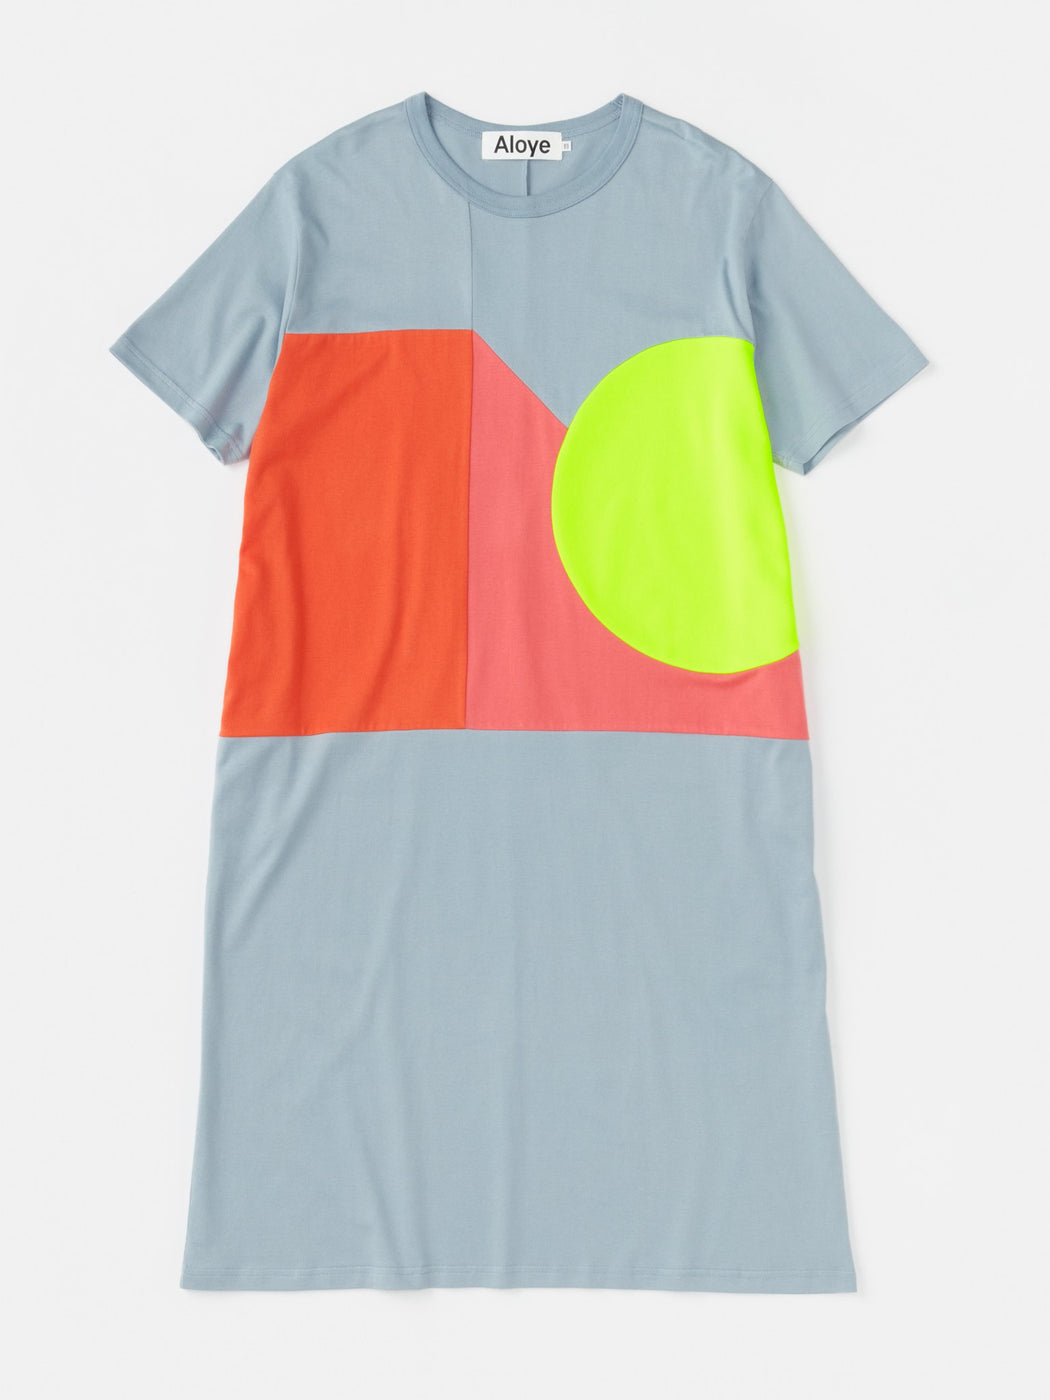 ALOYE Color Blocks Women's Short Sleeve T-shirt Dress Color